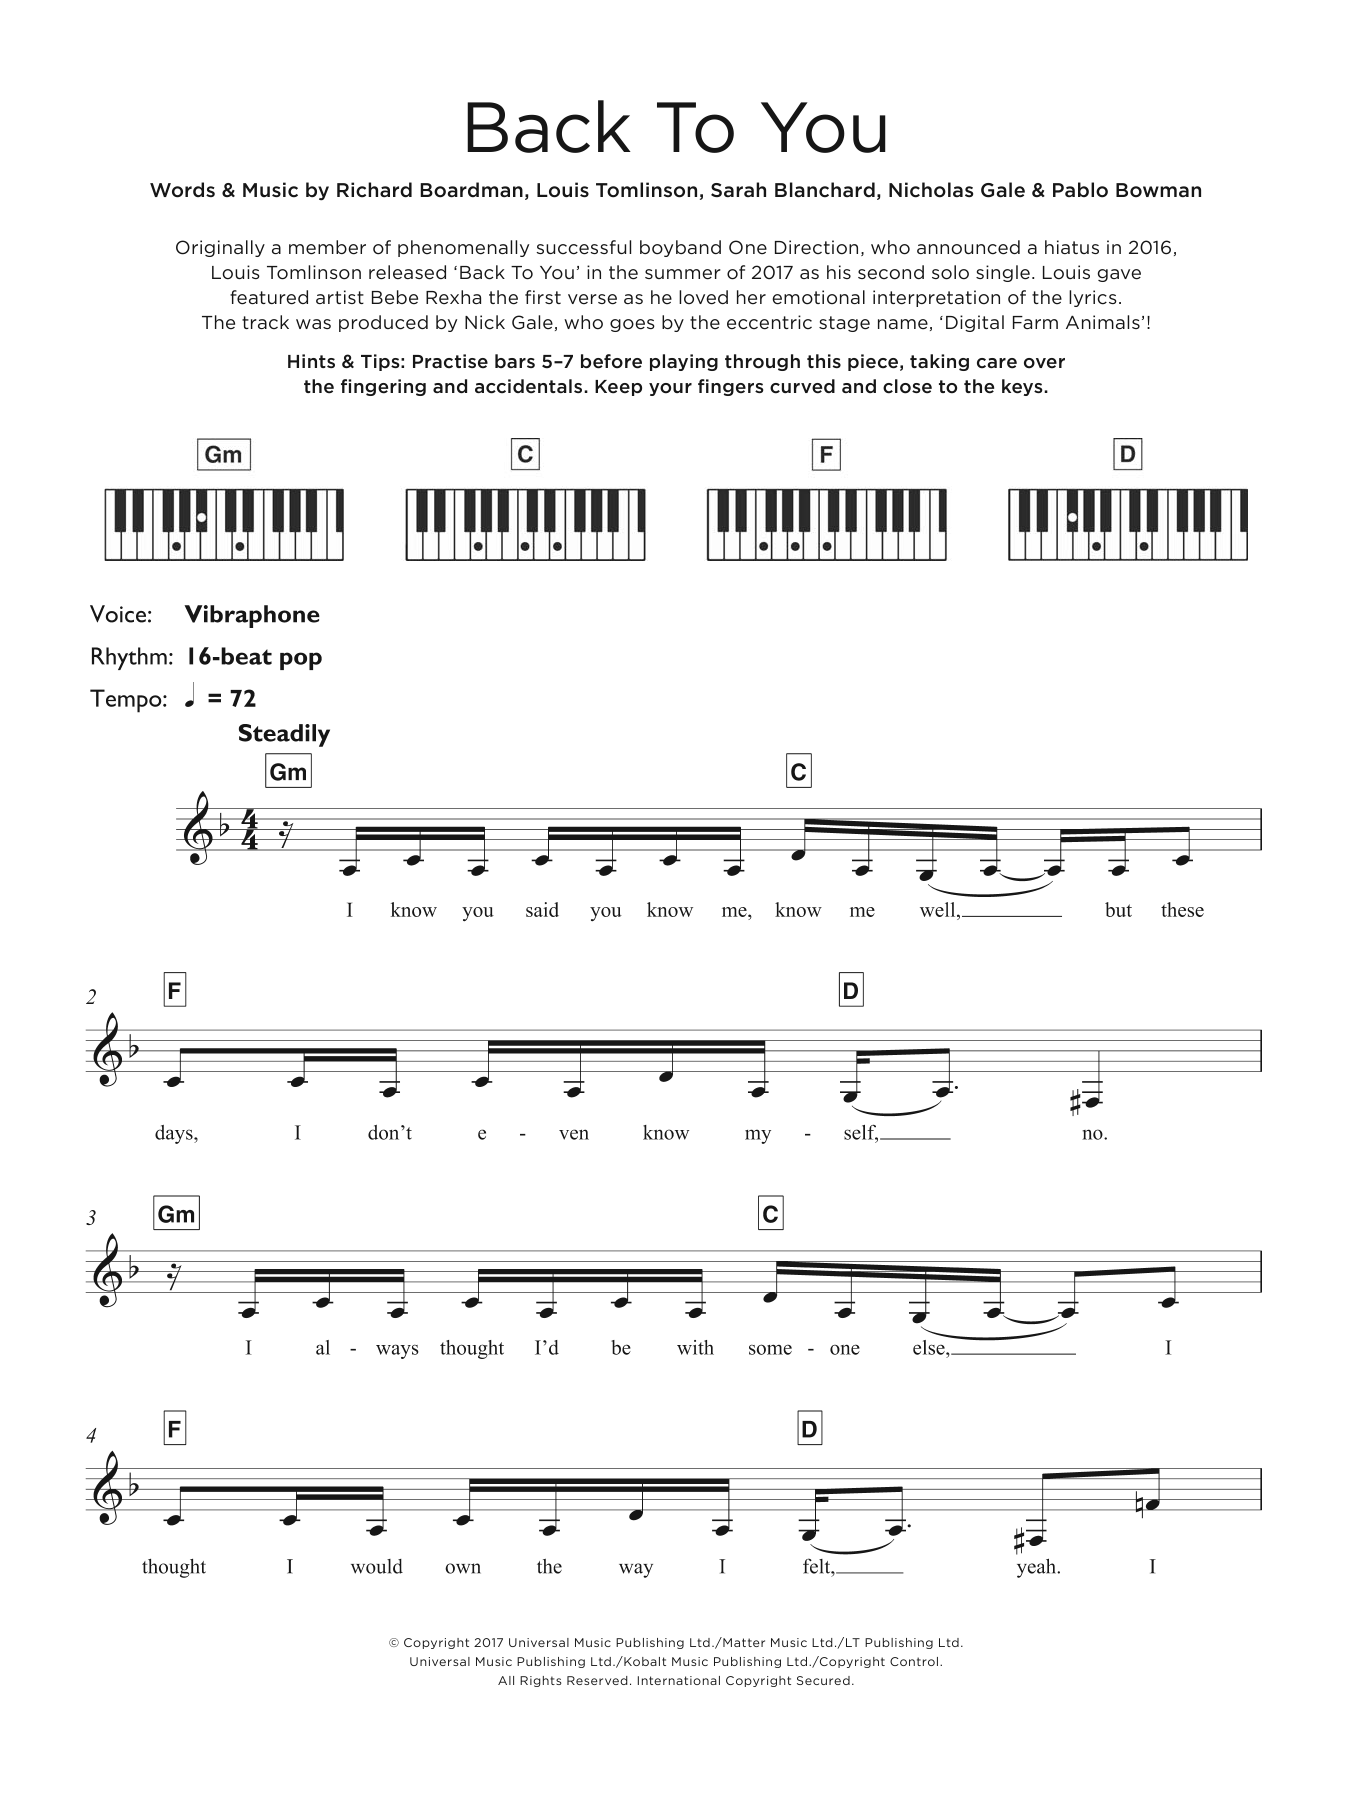 Louis Tomlinson Back To You (feat. Bebe Rexha & Digital Farm Animals) sheet music notes and chords. Download Printable PDF.